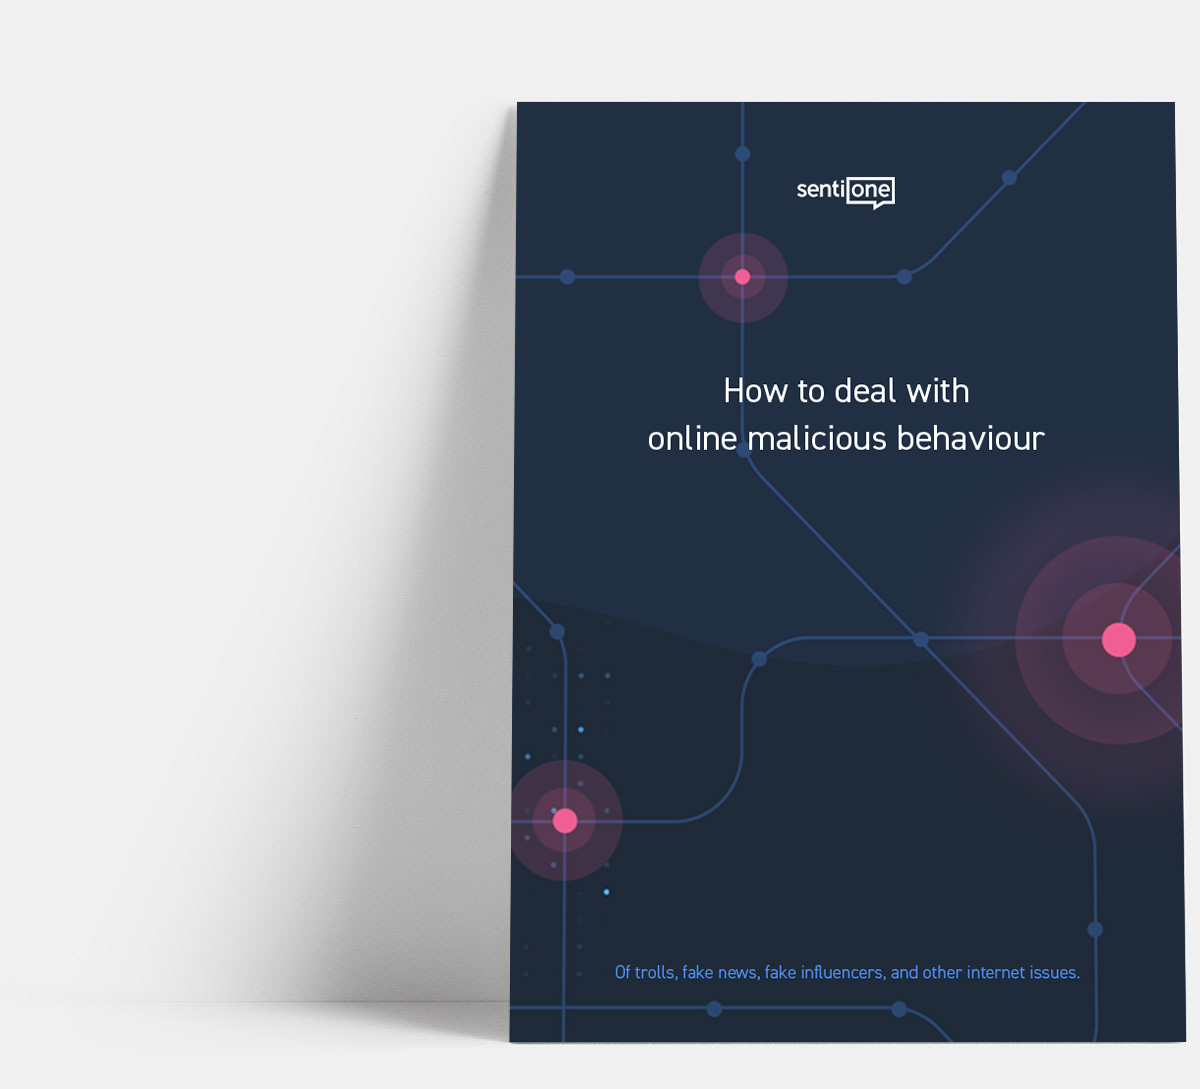 How to deal with online malicious behaviour: Of trolls, fake news, fake influencers, and other internet issues whitepaper cover